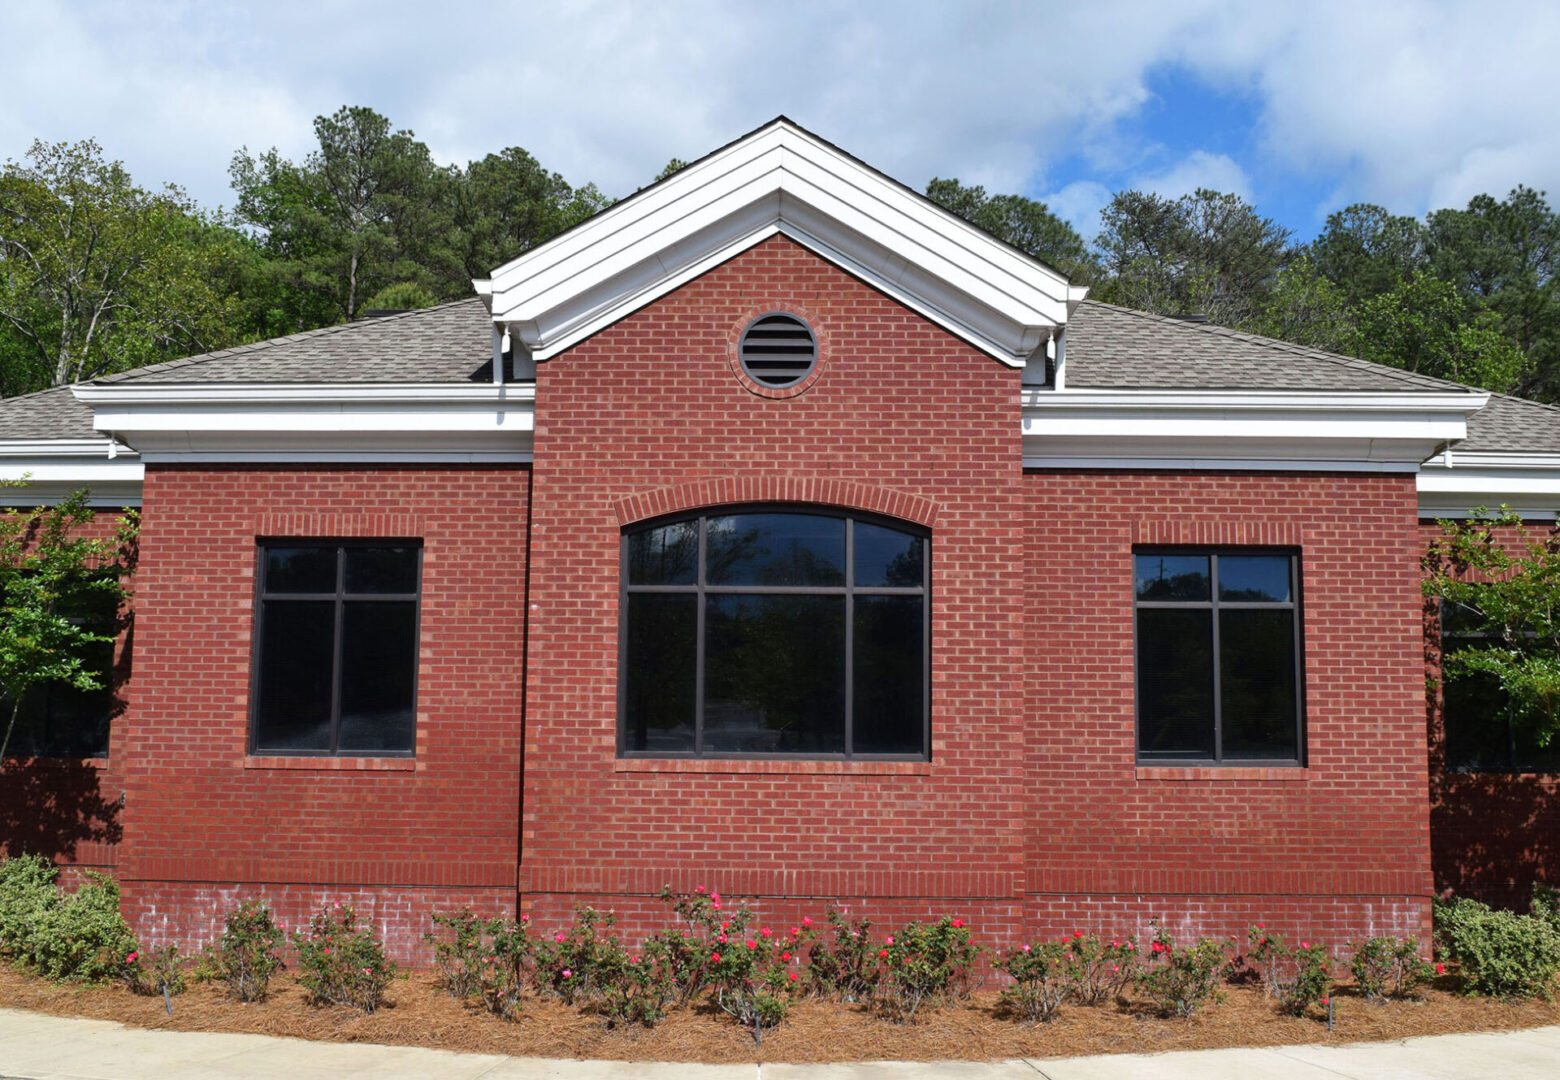 Prince Of Peace Catholic Church – Church Administration Addition, Hoover, AL